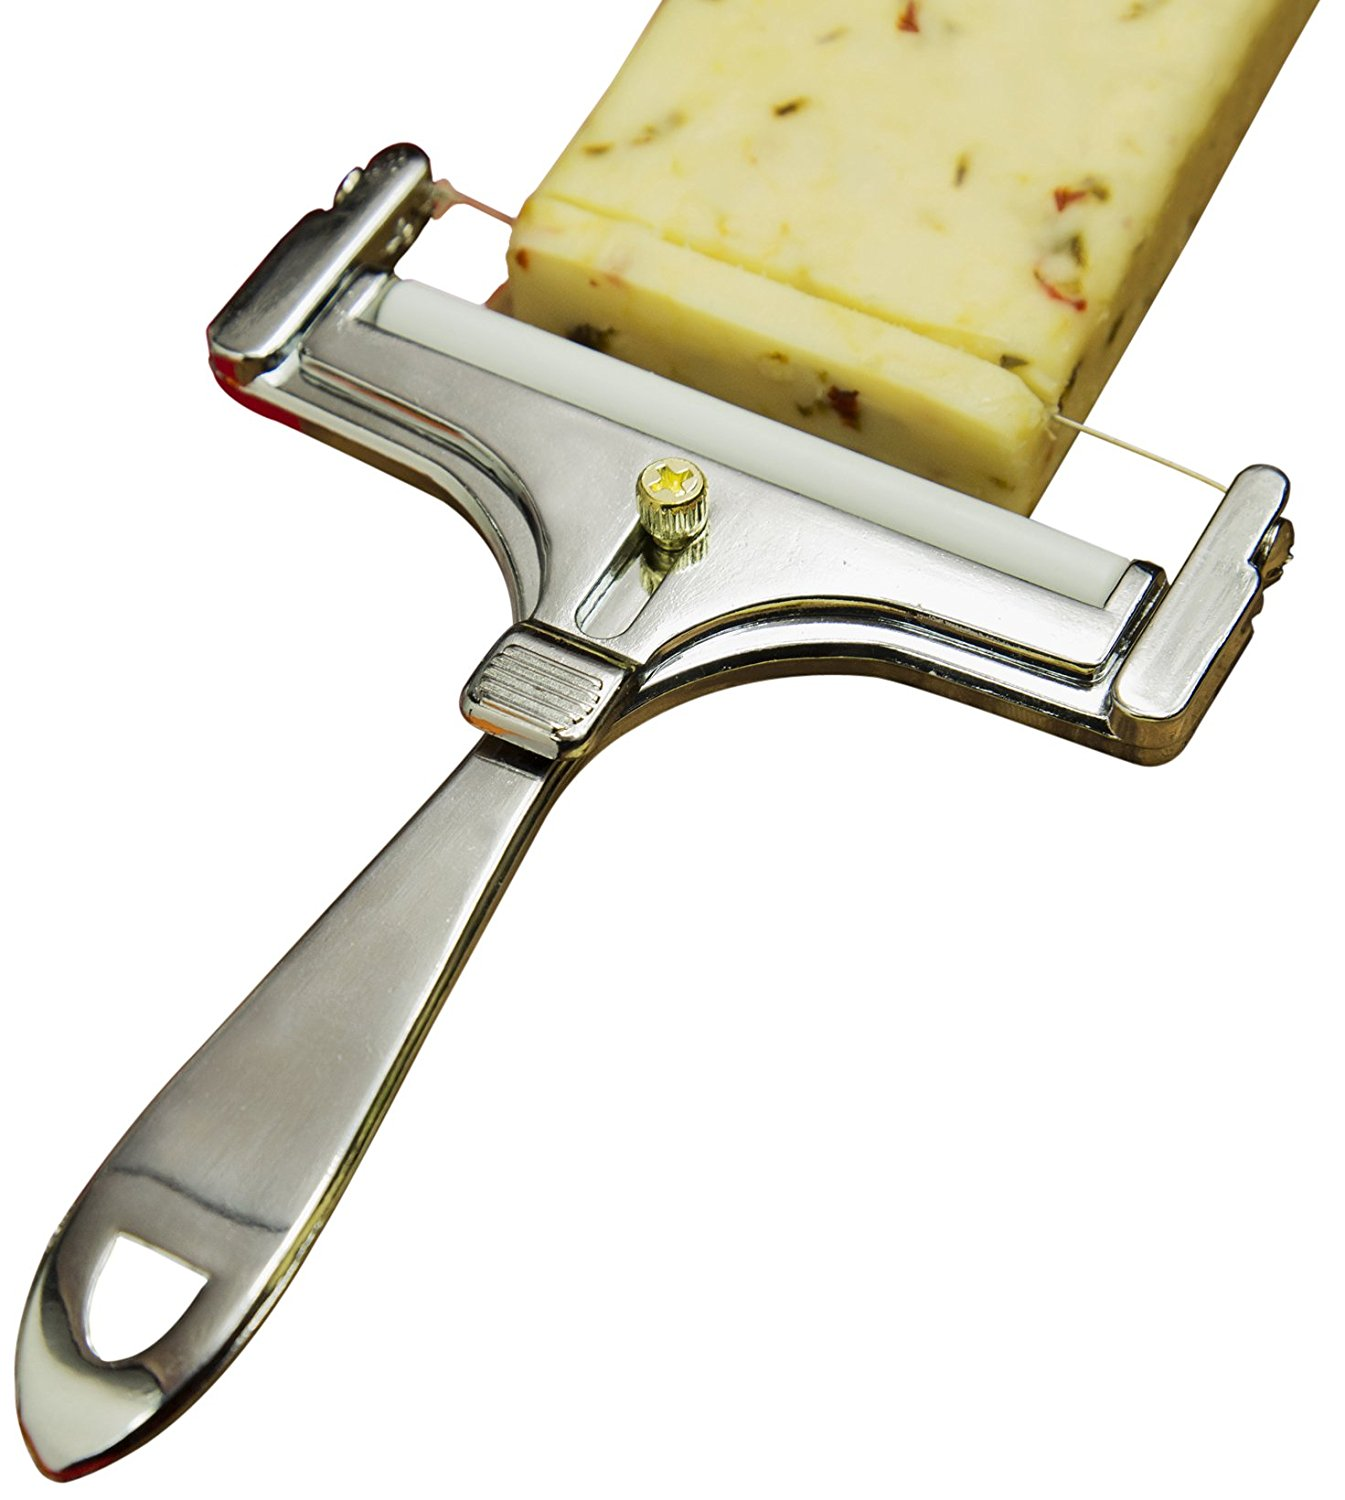 Brands Adjustable Cheese Slicer, Wine New Heavy Slicer 1year Wire Pro Cutting Planewith CherryOlive Warranty Marble Adjustable Fox Handle Thickness 7.., By Fox Run